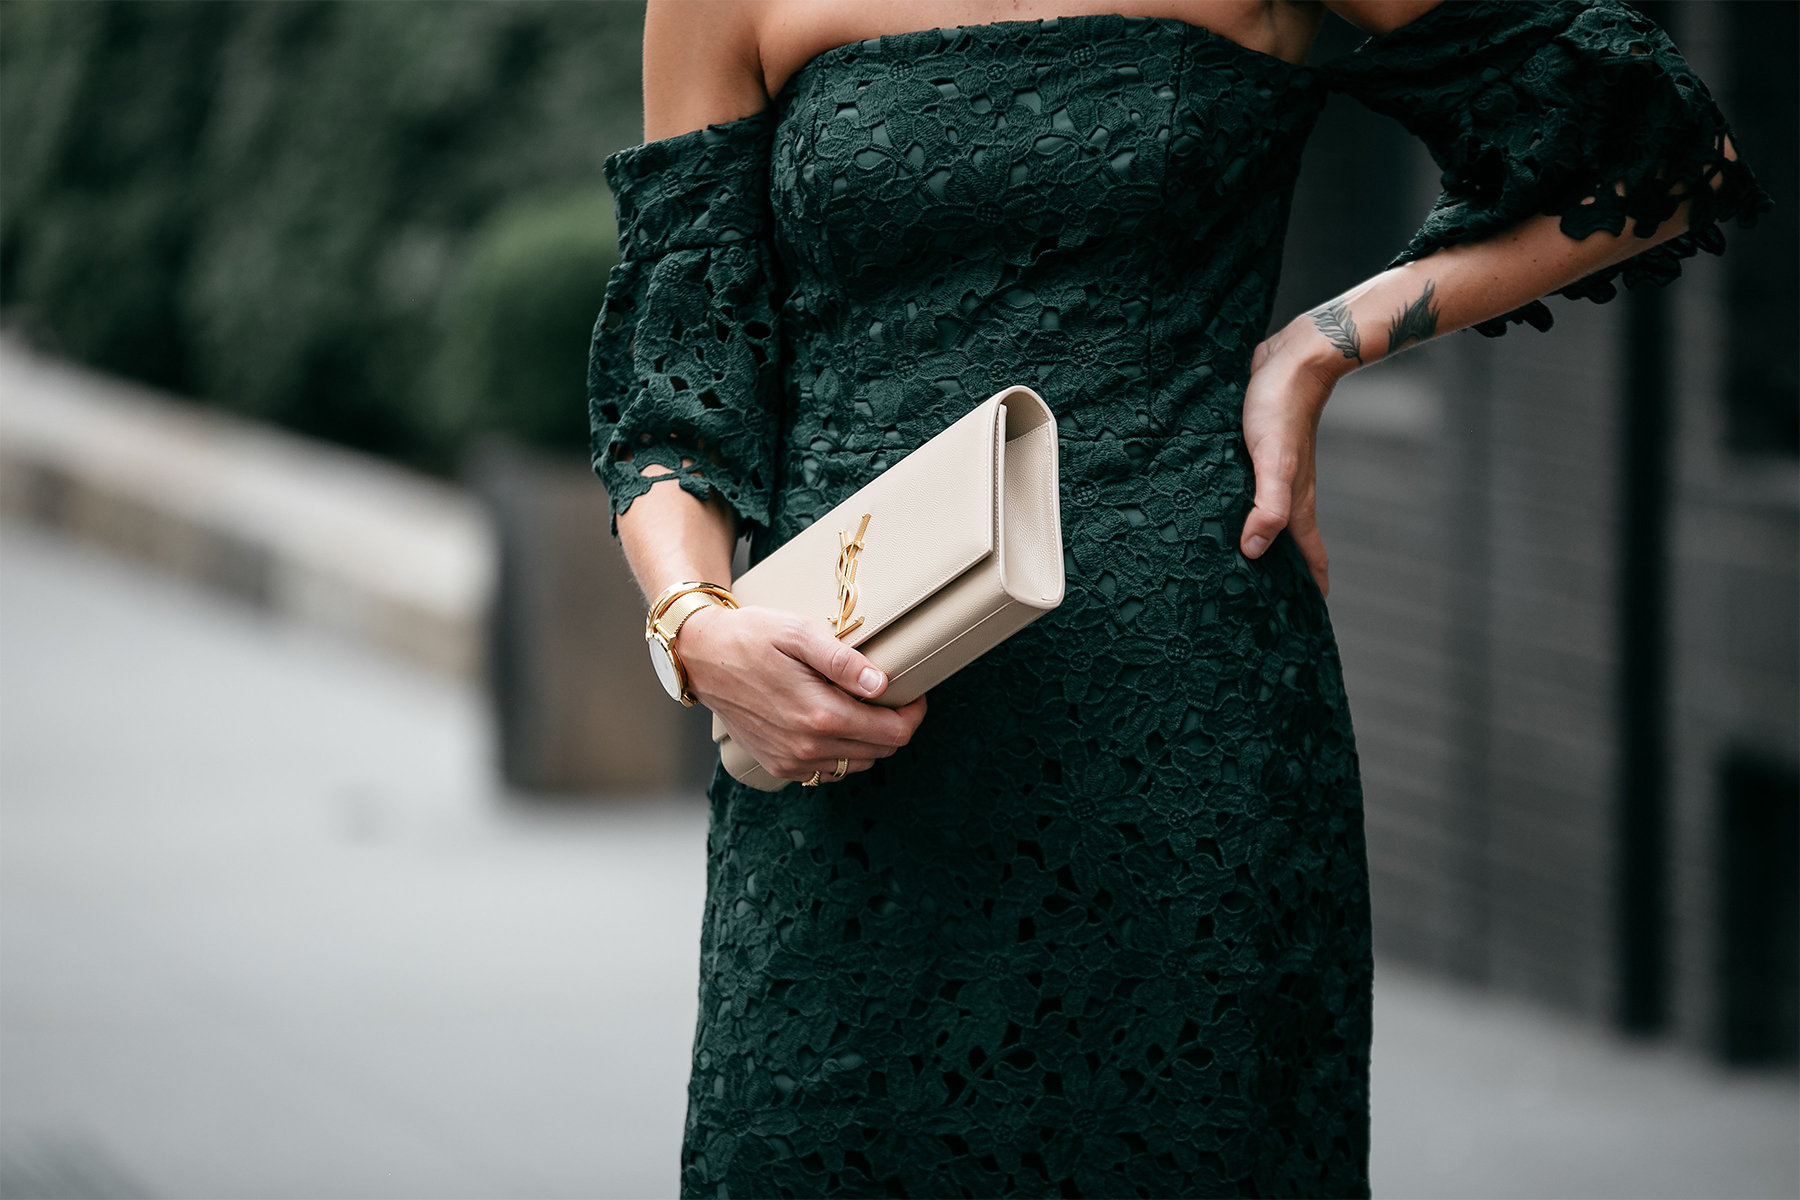 Club Monaco Green Lace Dress Saint Laurent Monogram Clutch Fashion Jackson Dallas Blogger Fashion Blogger Street Style